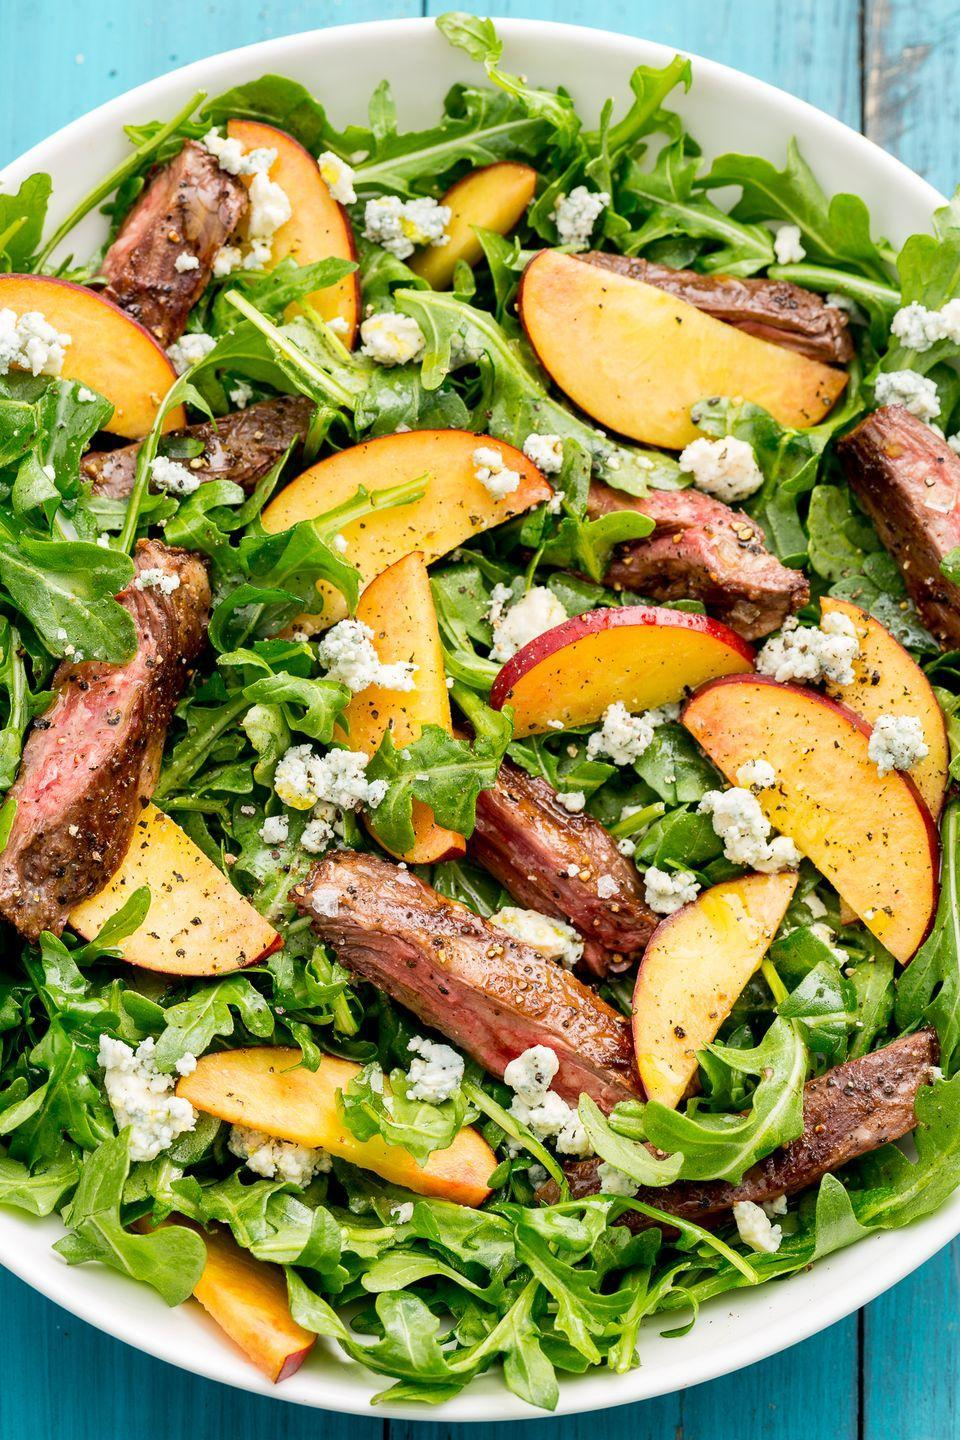 """<p>Peppery arugula is the perfect vessel for this savory-sweet combo.</p><p>Get the recipe from <a href=""""/cooking/recipe-ideas/recipes/a47340/balsamic-grilled-steak-salad-with-peaches-recipe/"""" data-ylk=""""slk:Delish"""" class=""""link rapid-noclick-resp"""">Delish</a>.</p>"""